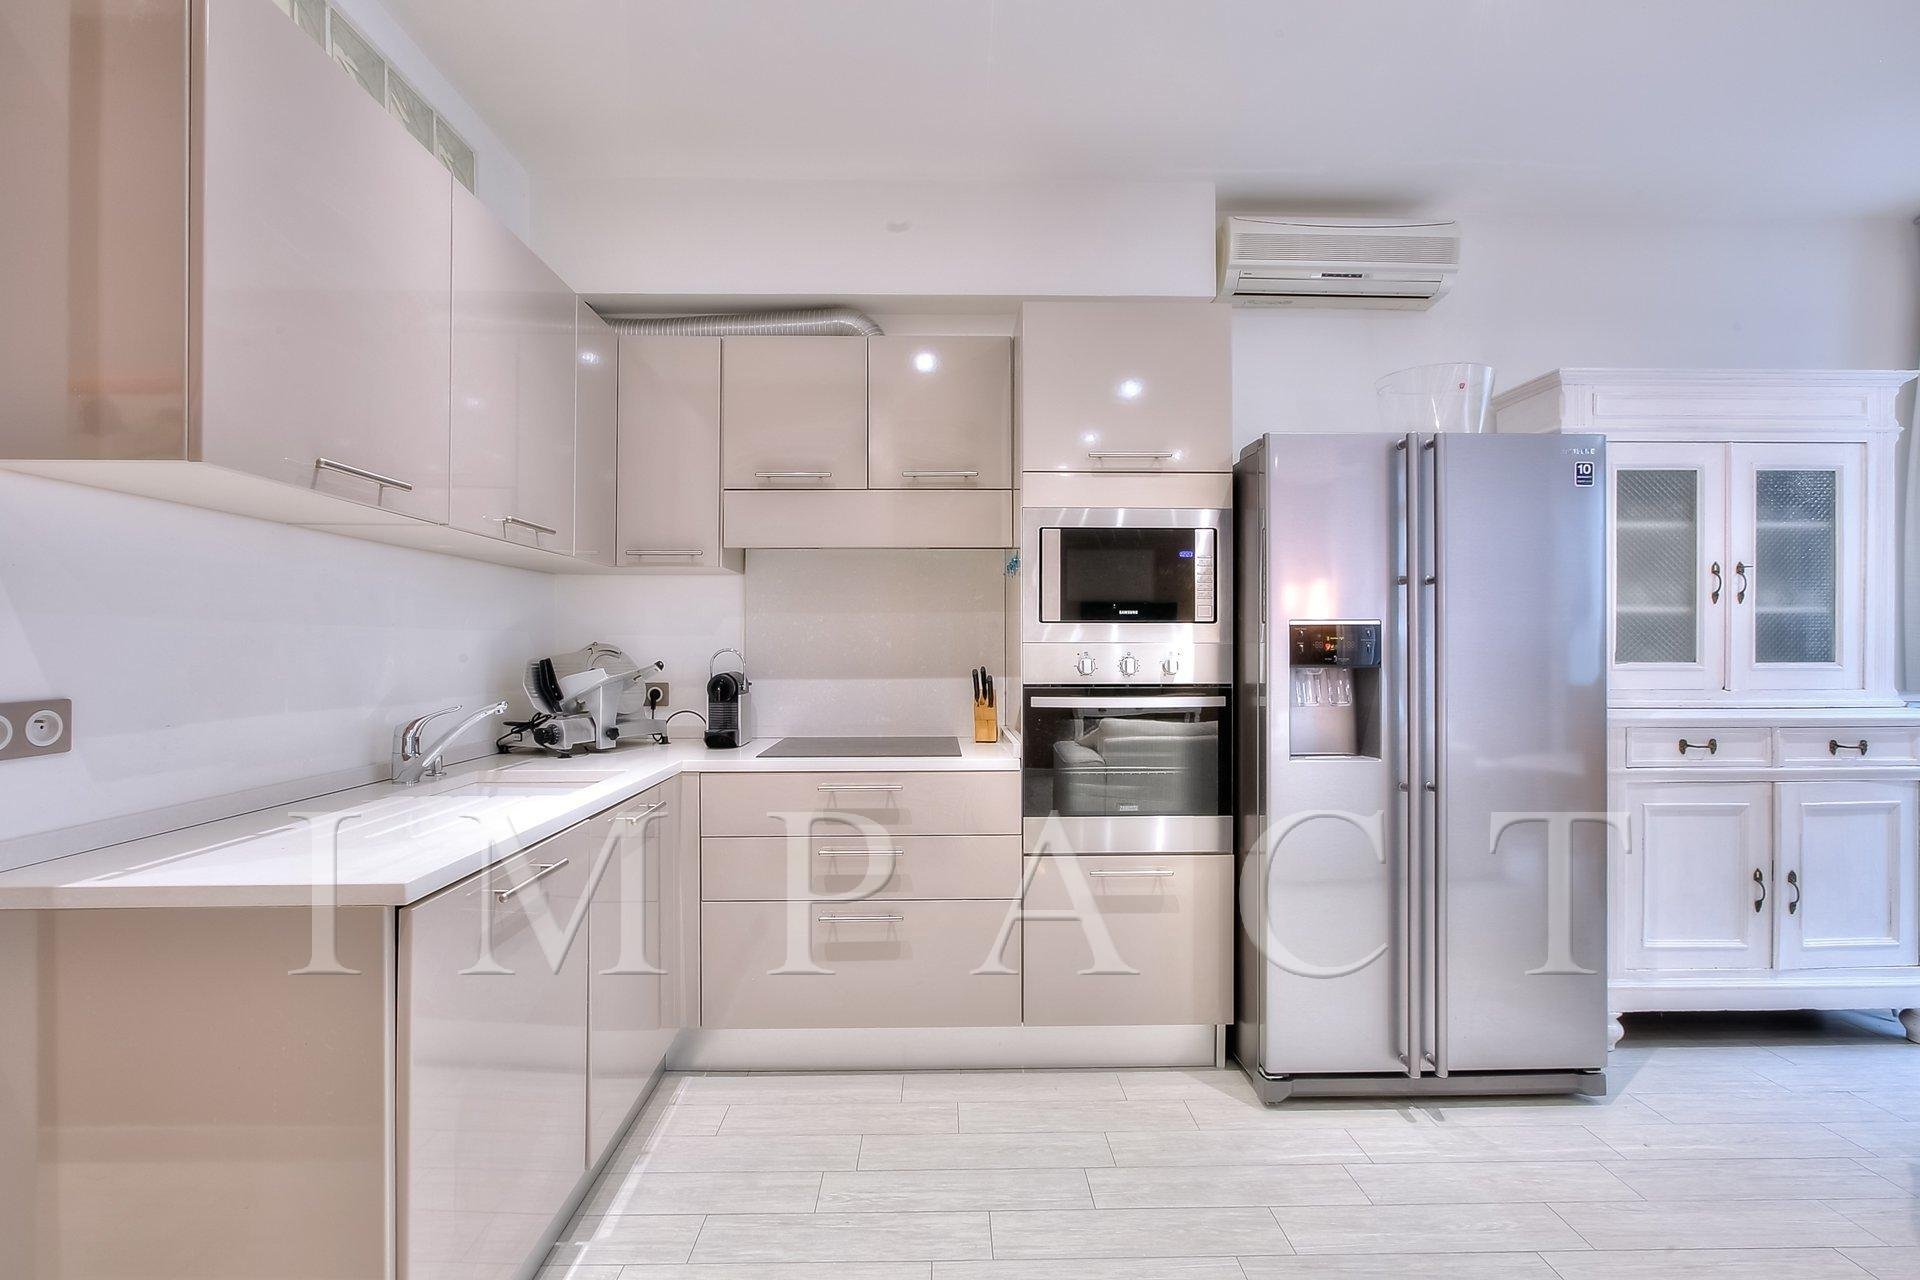 2-bedroom apartment to rent with large terrace in the center of Cannes.